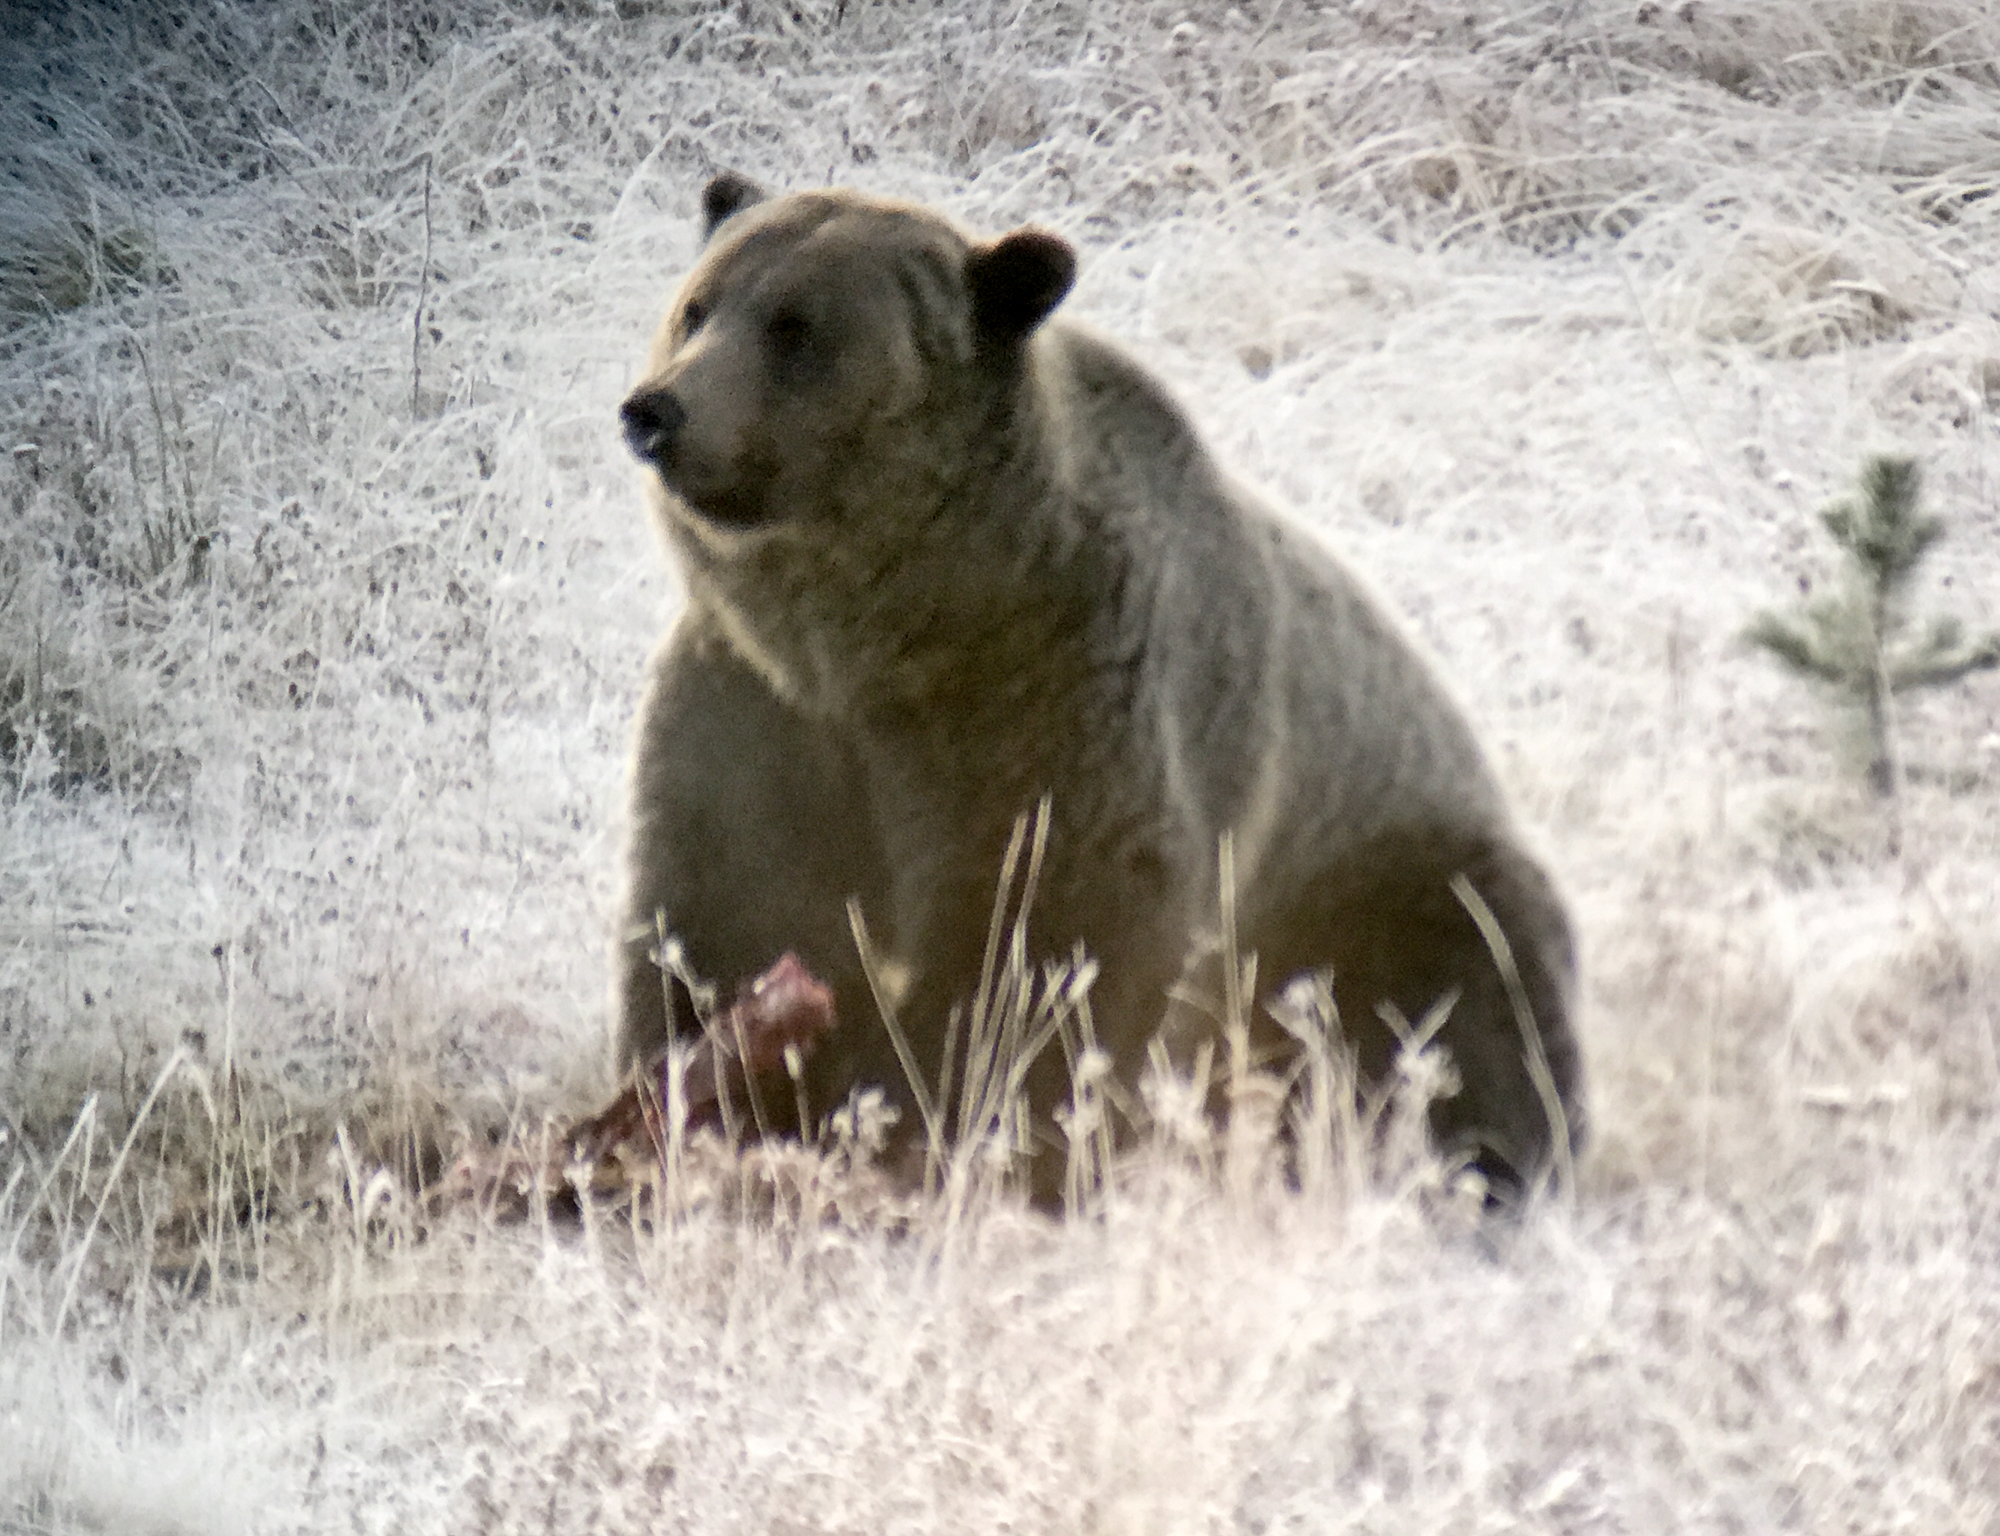 Bears really don't care about much